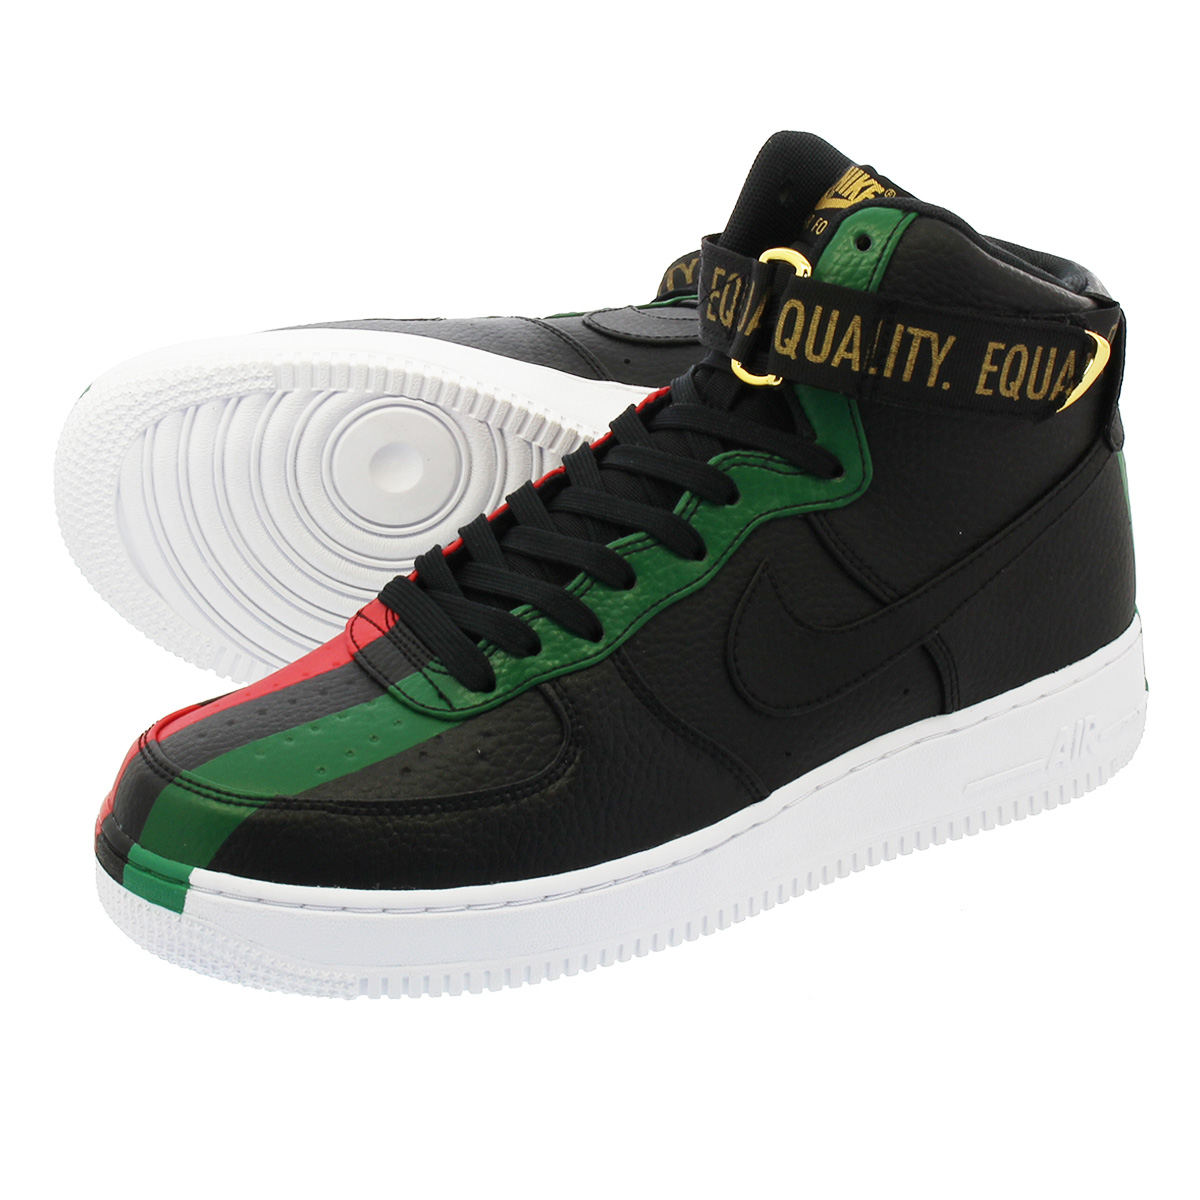 LOWTEX PLUS  NIKE AIR FORCE 1 HIGH BHM 2018 Nike air force 1 high BHM 2018  BLACK UNIVERSITY RED PINE GREEN 836 8e63da43e